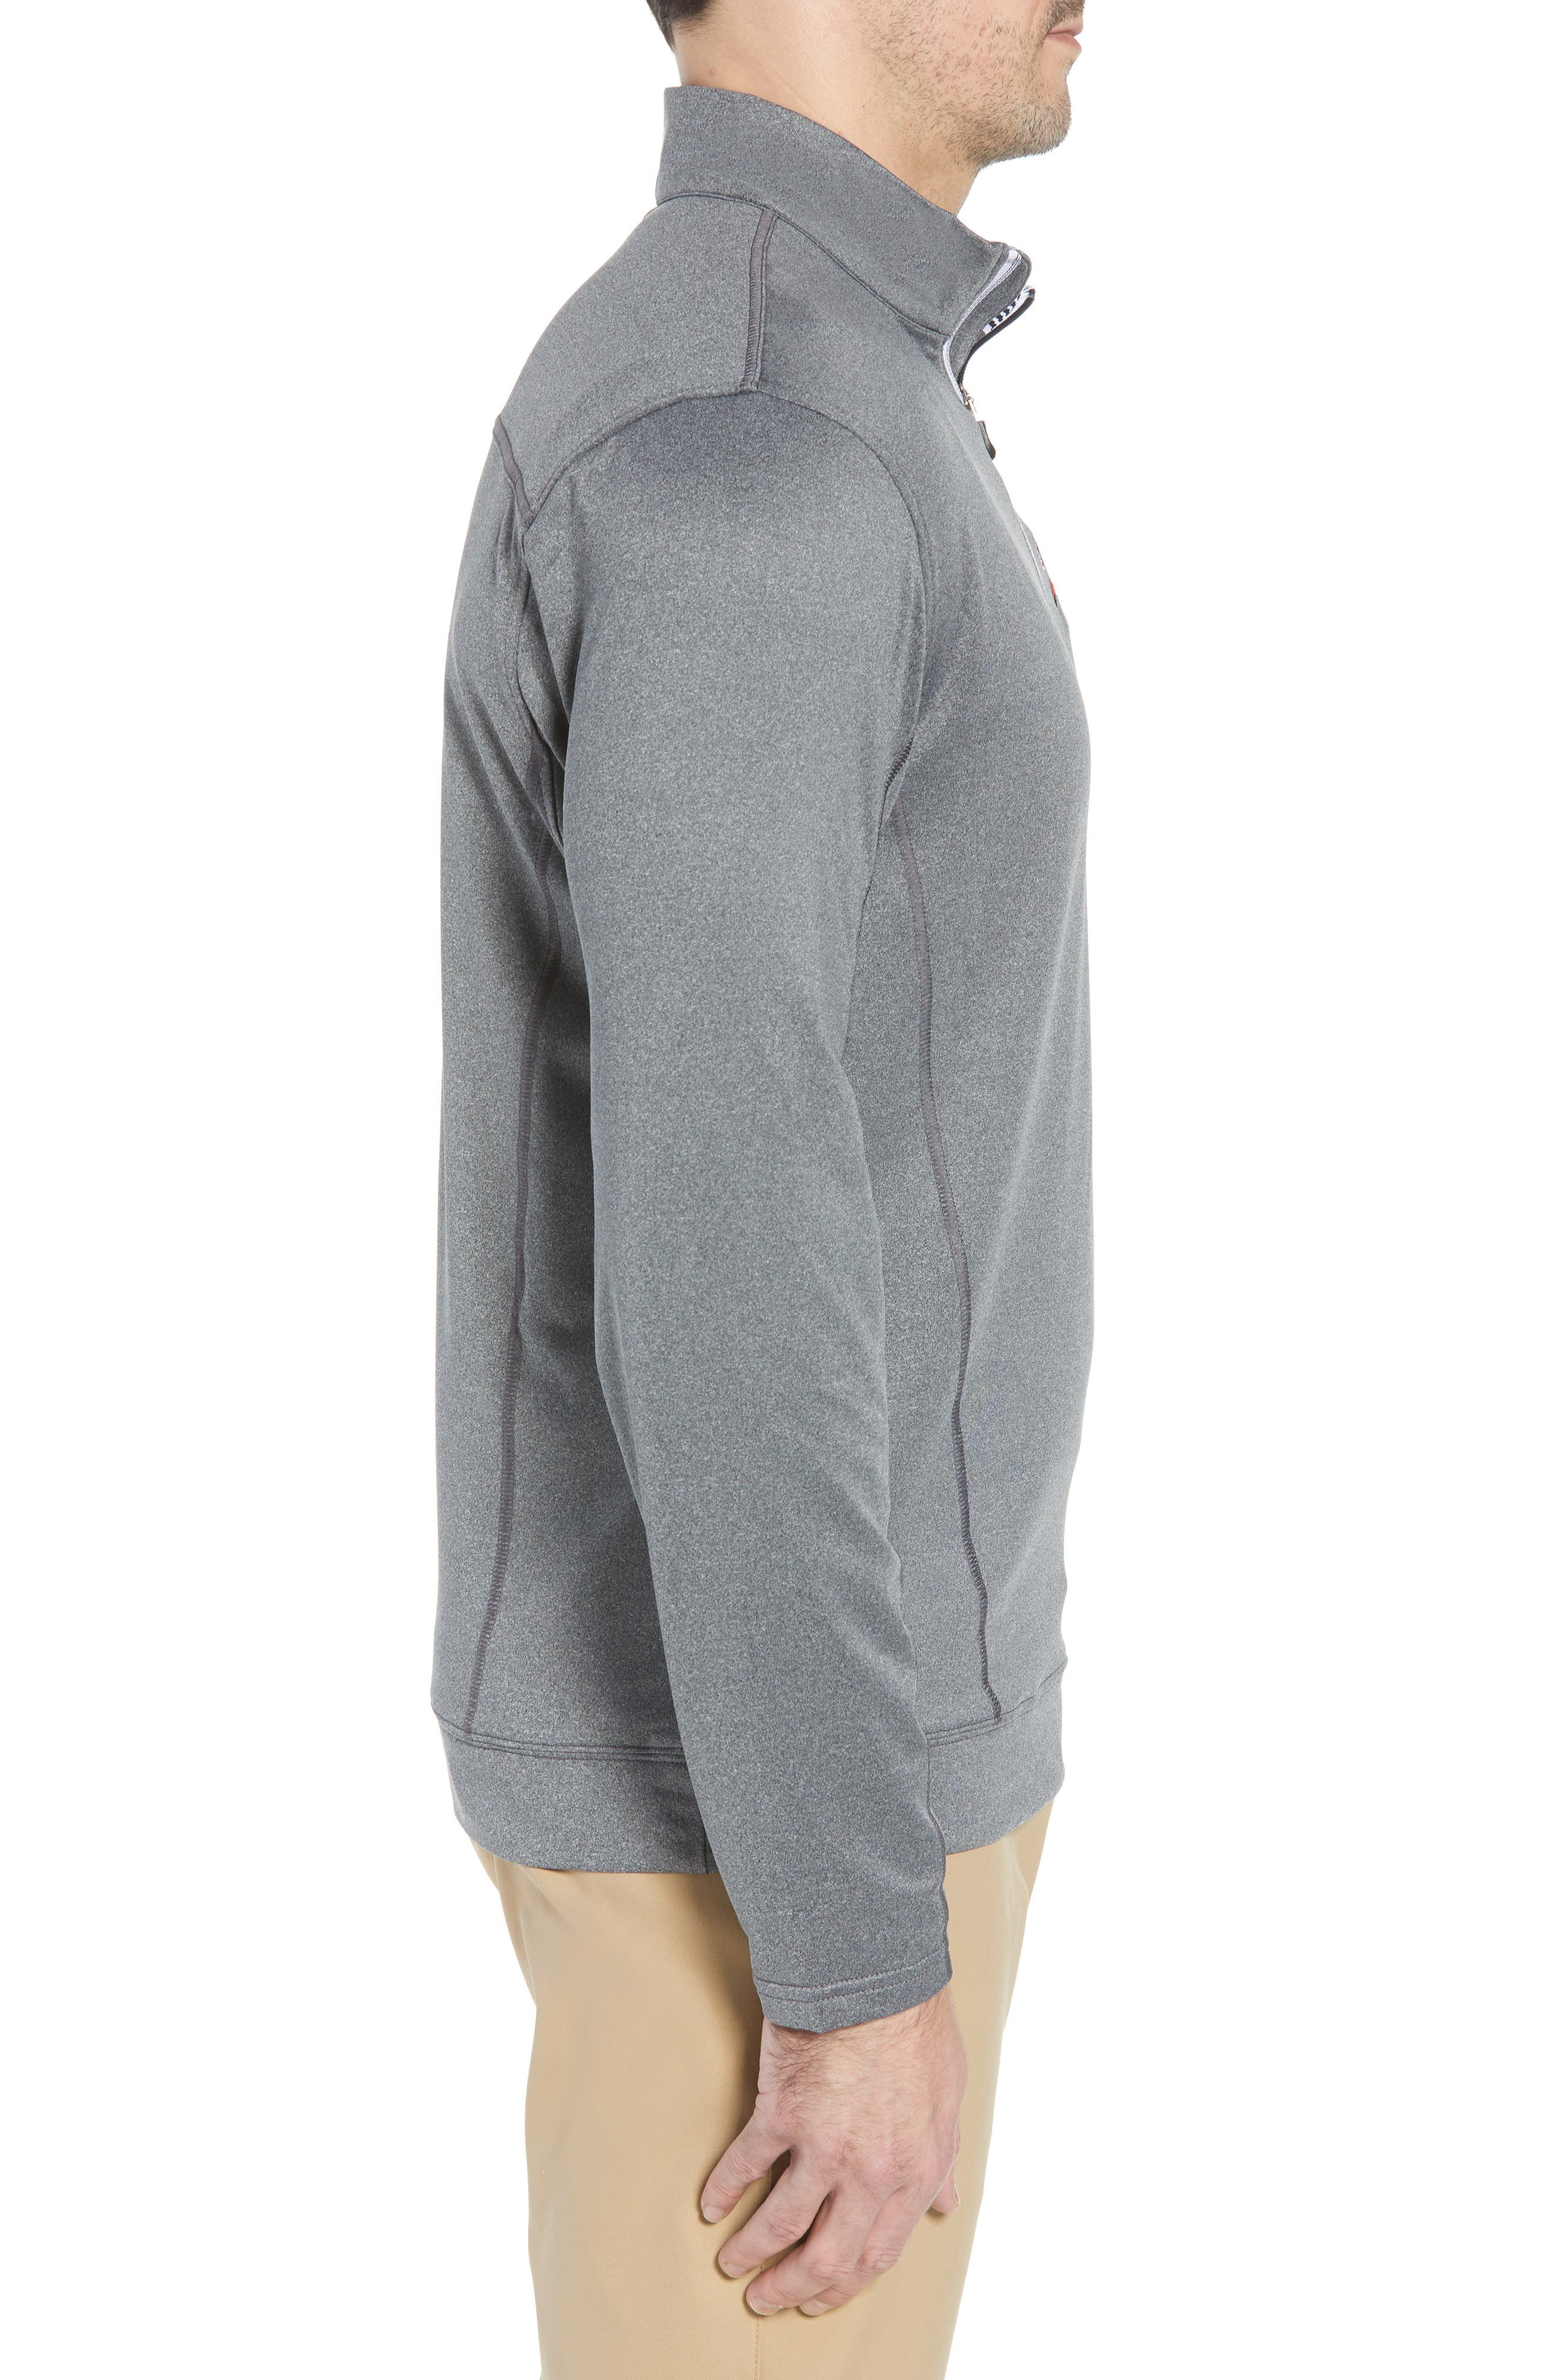 Endurance Tampa Bay Buccaneers Regular Fit Pullover,                             Alternate thumbnail 3, color,                             CHARCOAL HEATHER